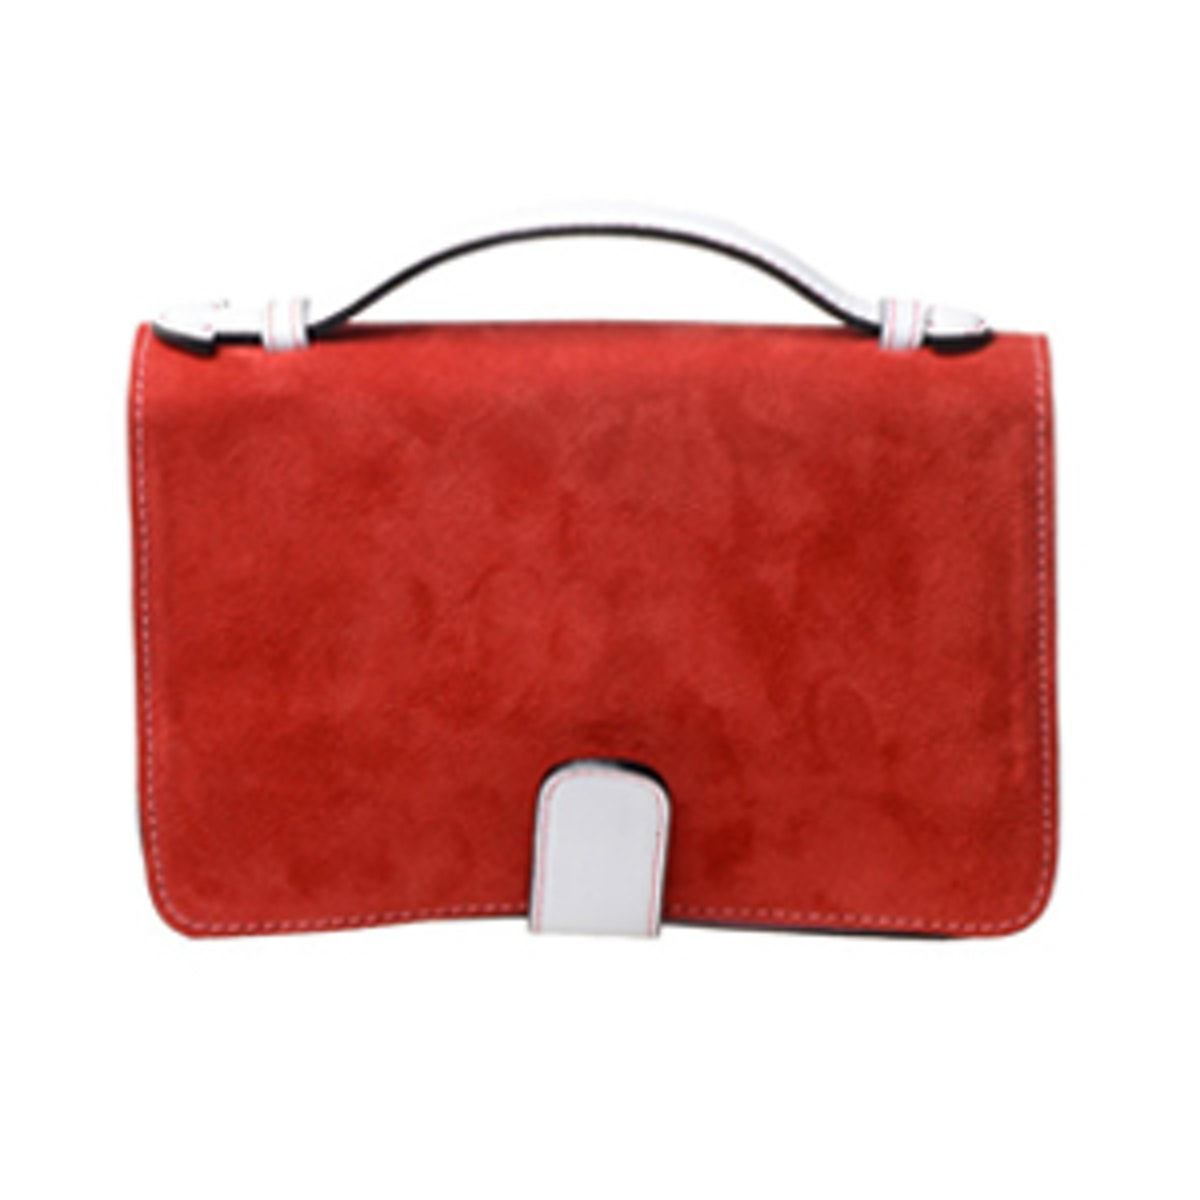 Leather Clutch With Removable Shoulder Strap